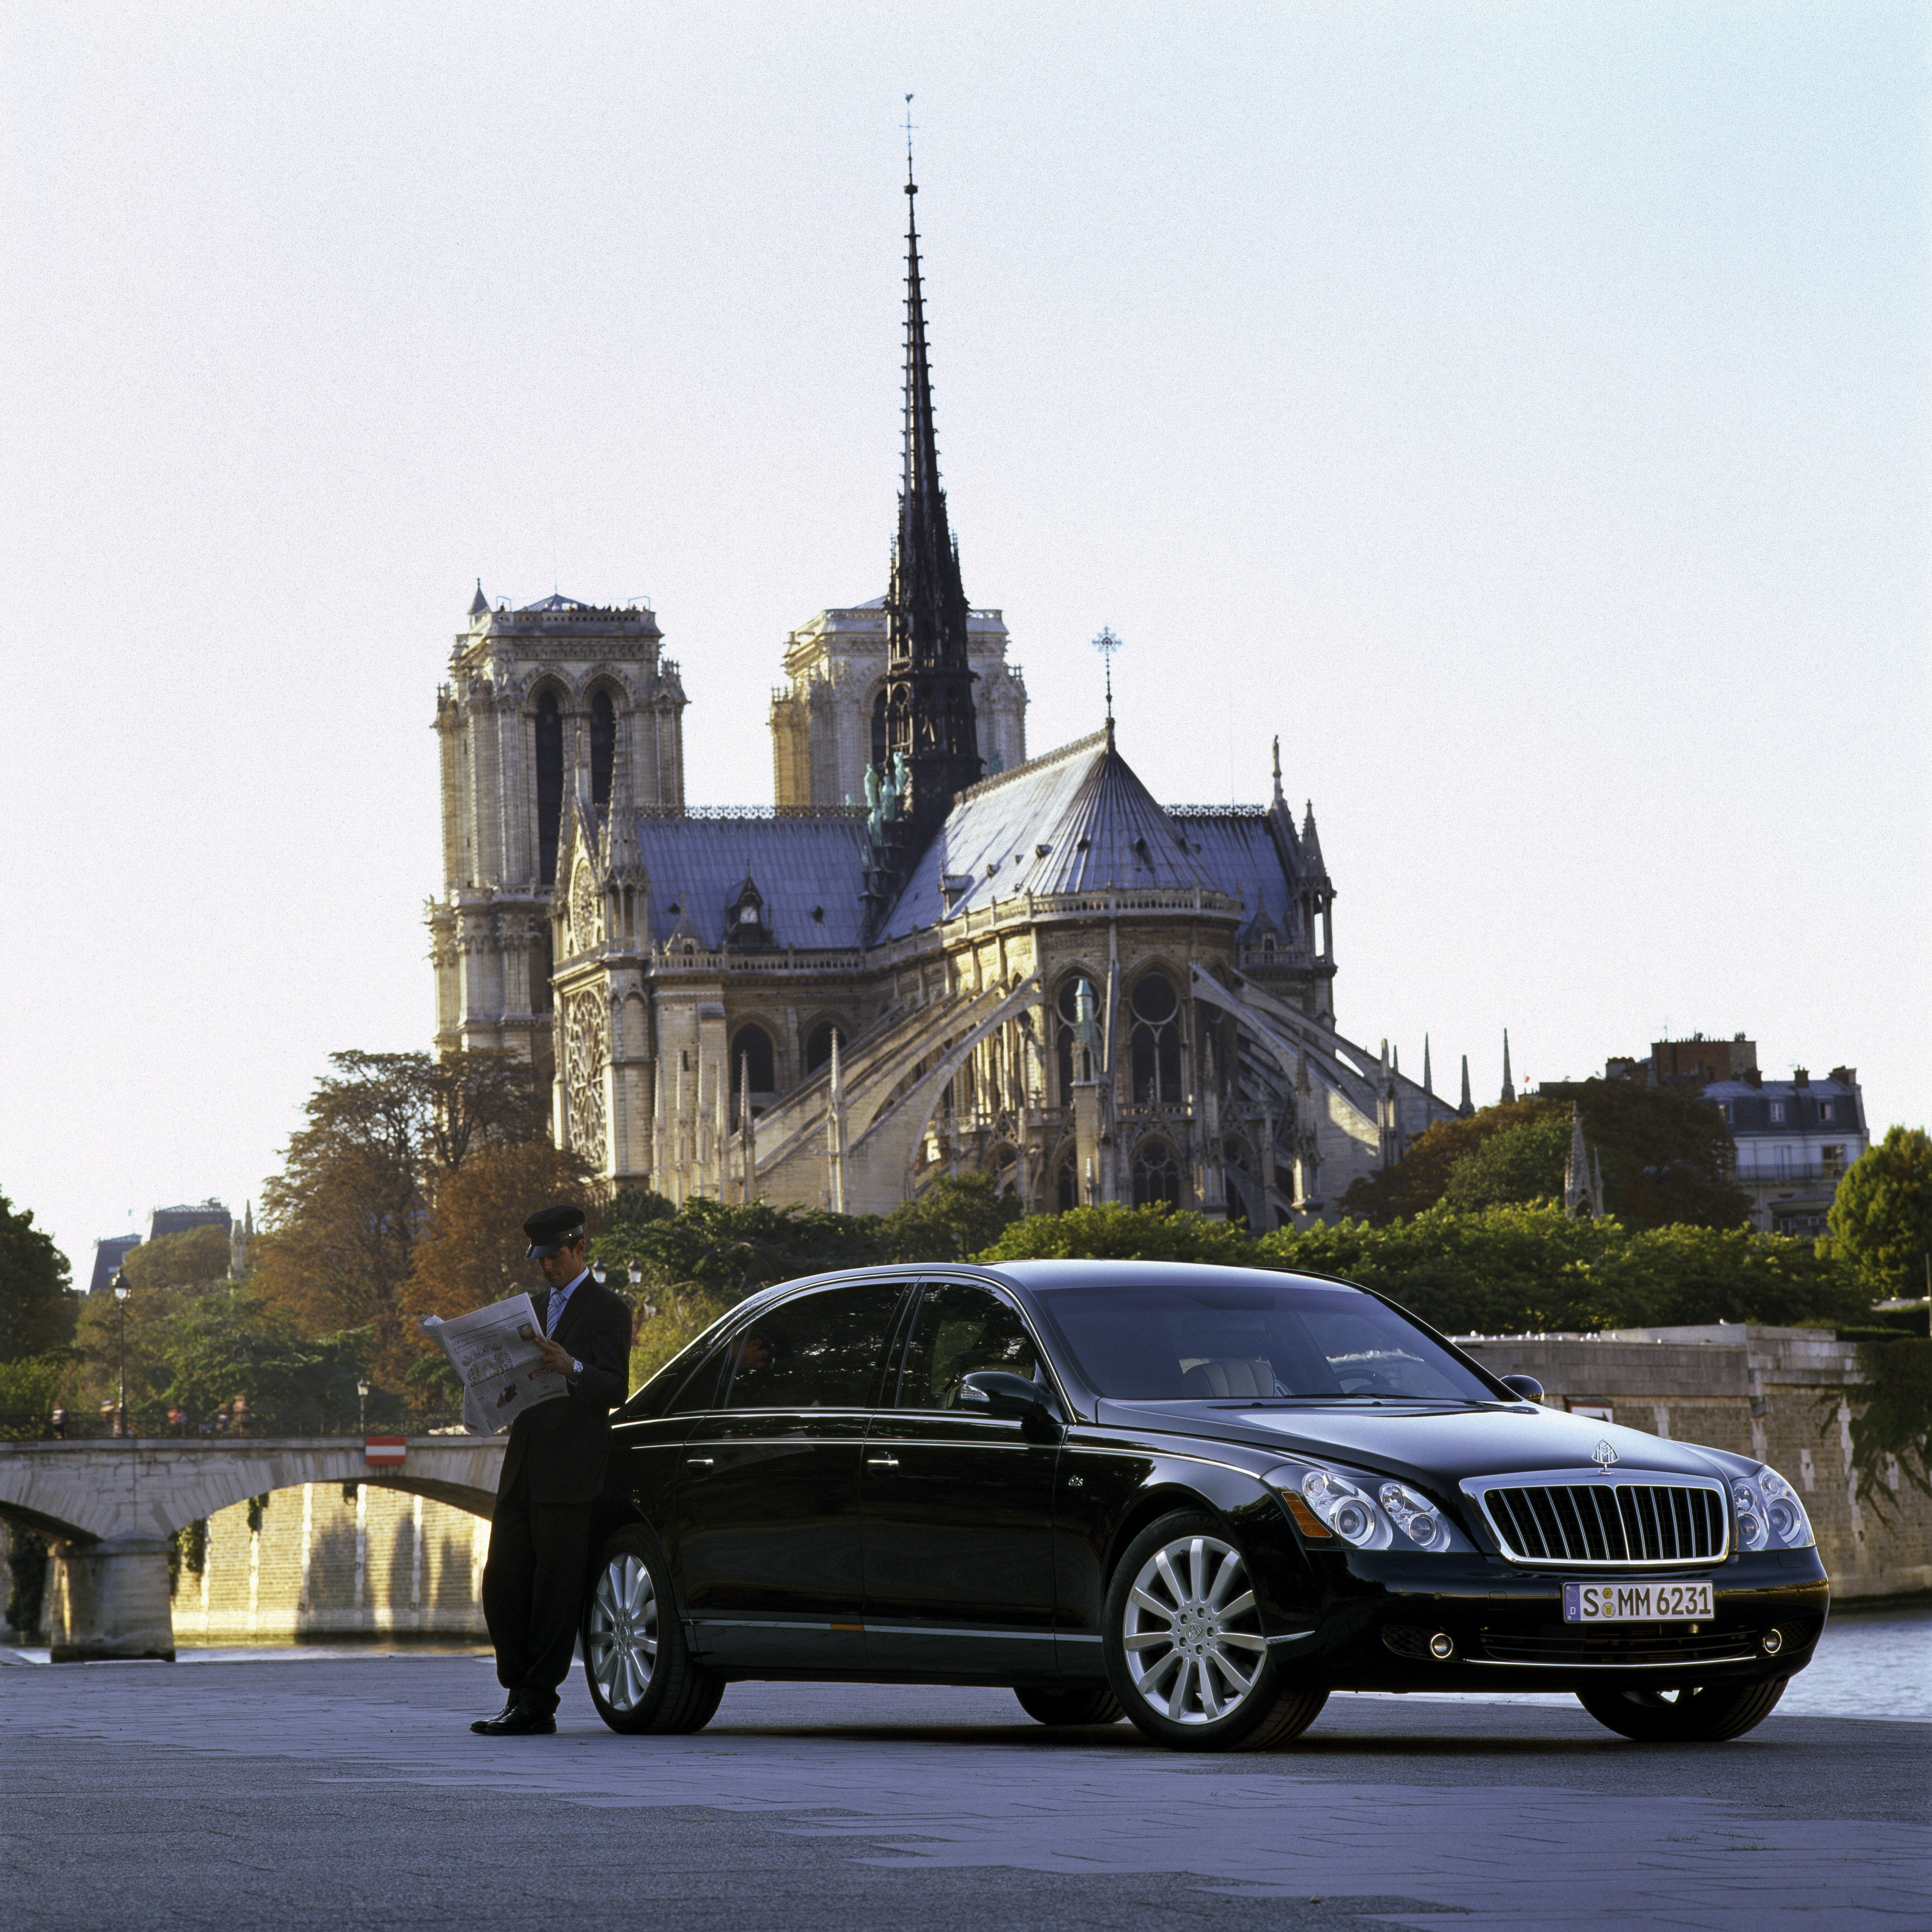 Maybach Car Wallpaper: Maybach 62 S Technical Details, History, Photos On Better